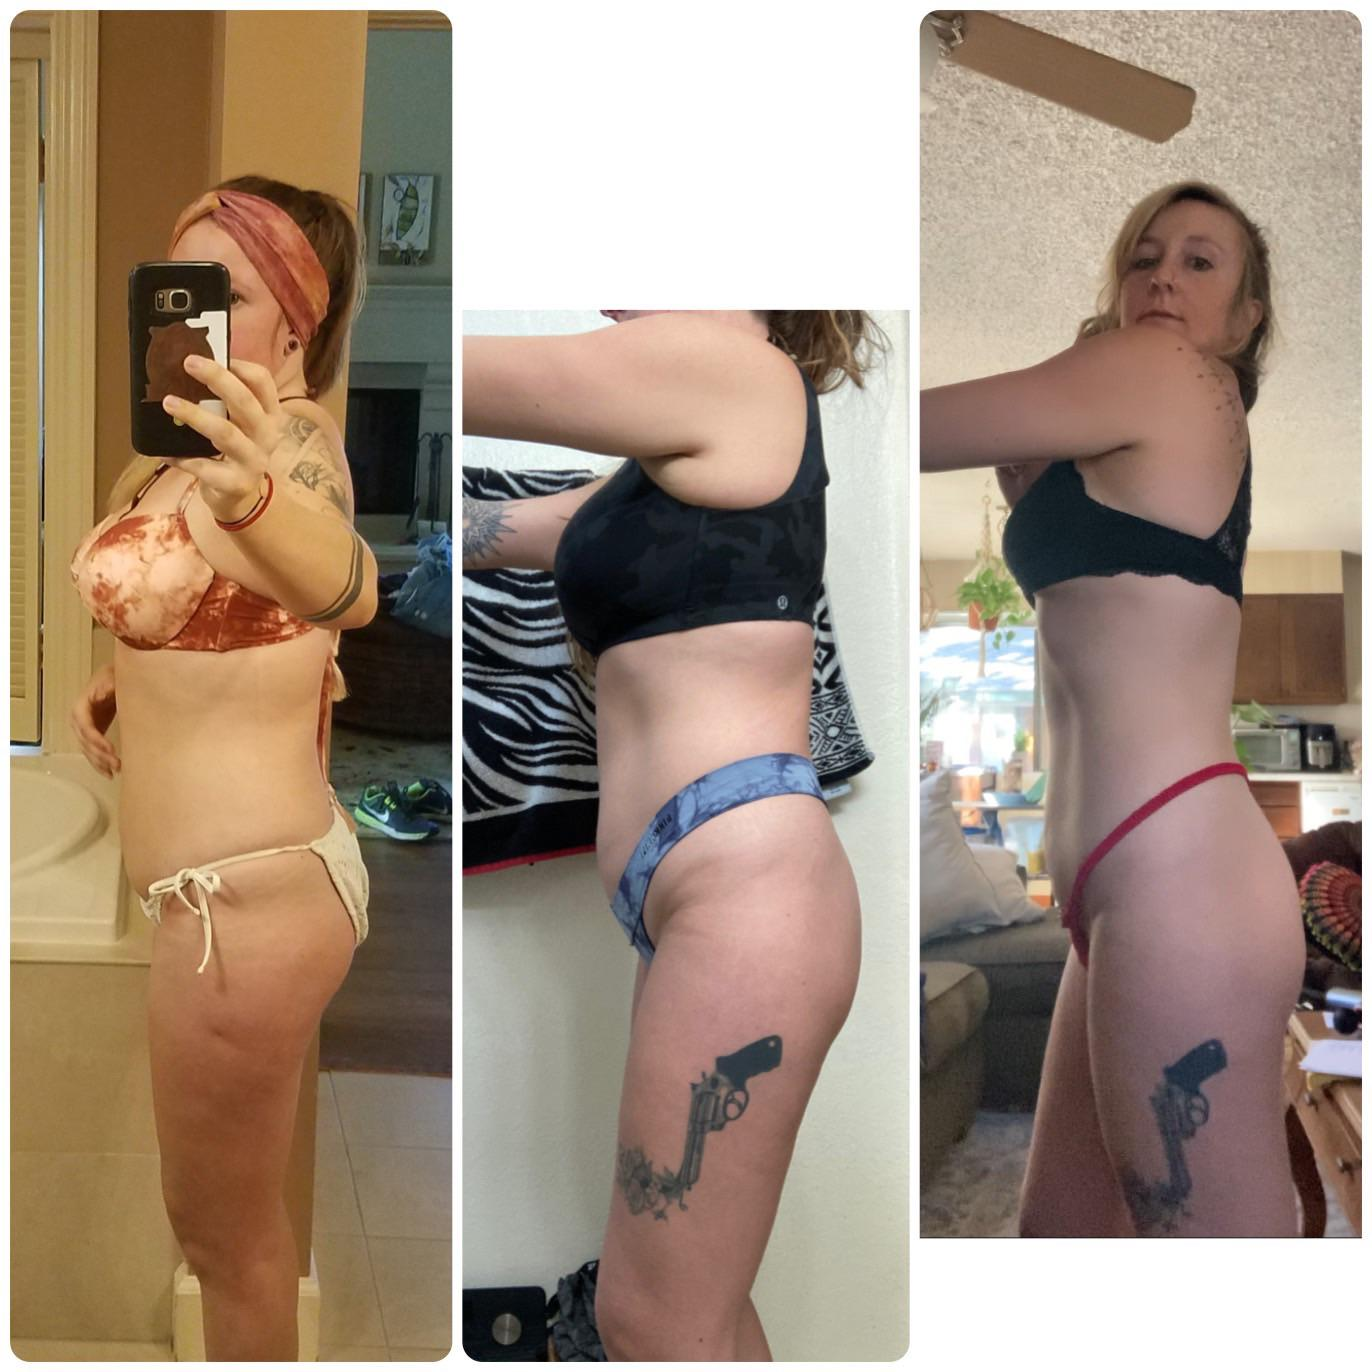 5 foot 6 Female 17 lbs Weight Loss Before and After 175 lbs to 158 lbs